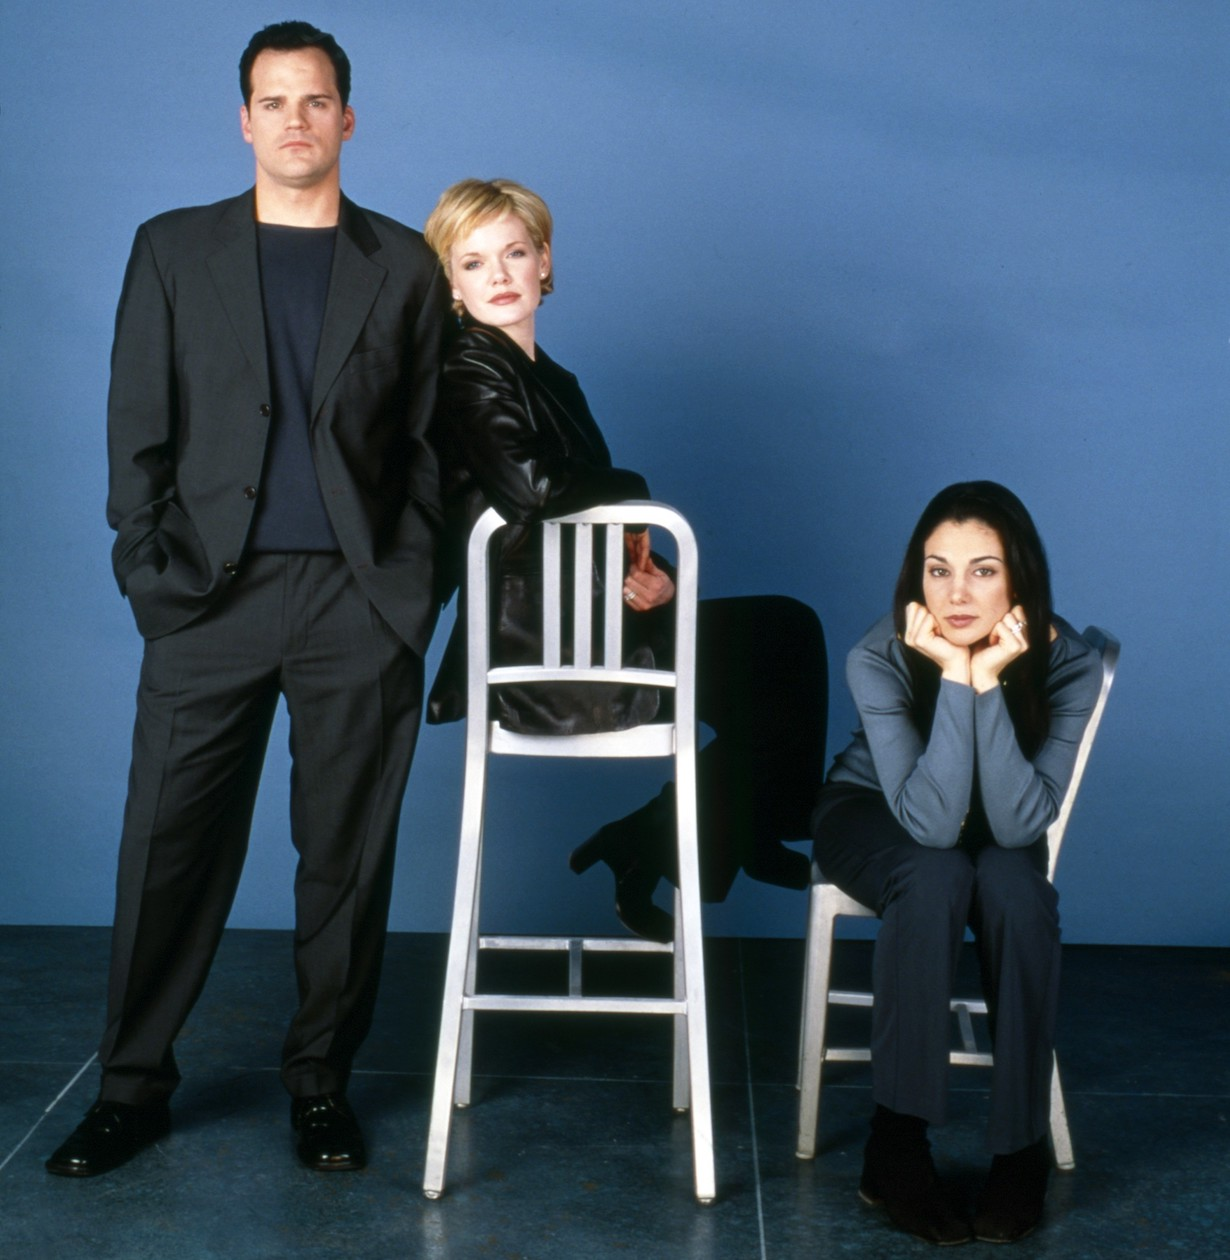 AS THE WORLD TURNS, from left: Michael Park, Maura West, Annie Parisse, 1990s, 1956-2010. ph: Robert Milazzo /© CBS /Courtesy Everett Collection